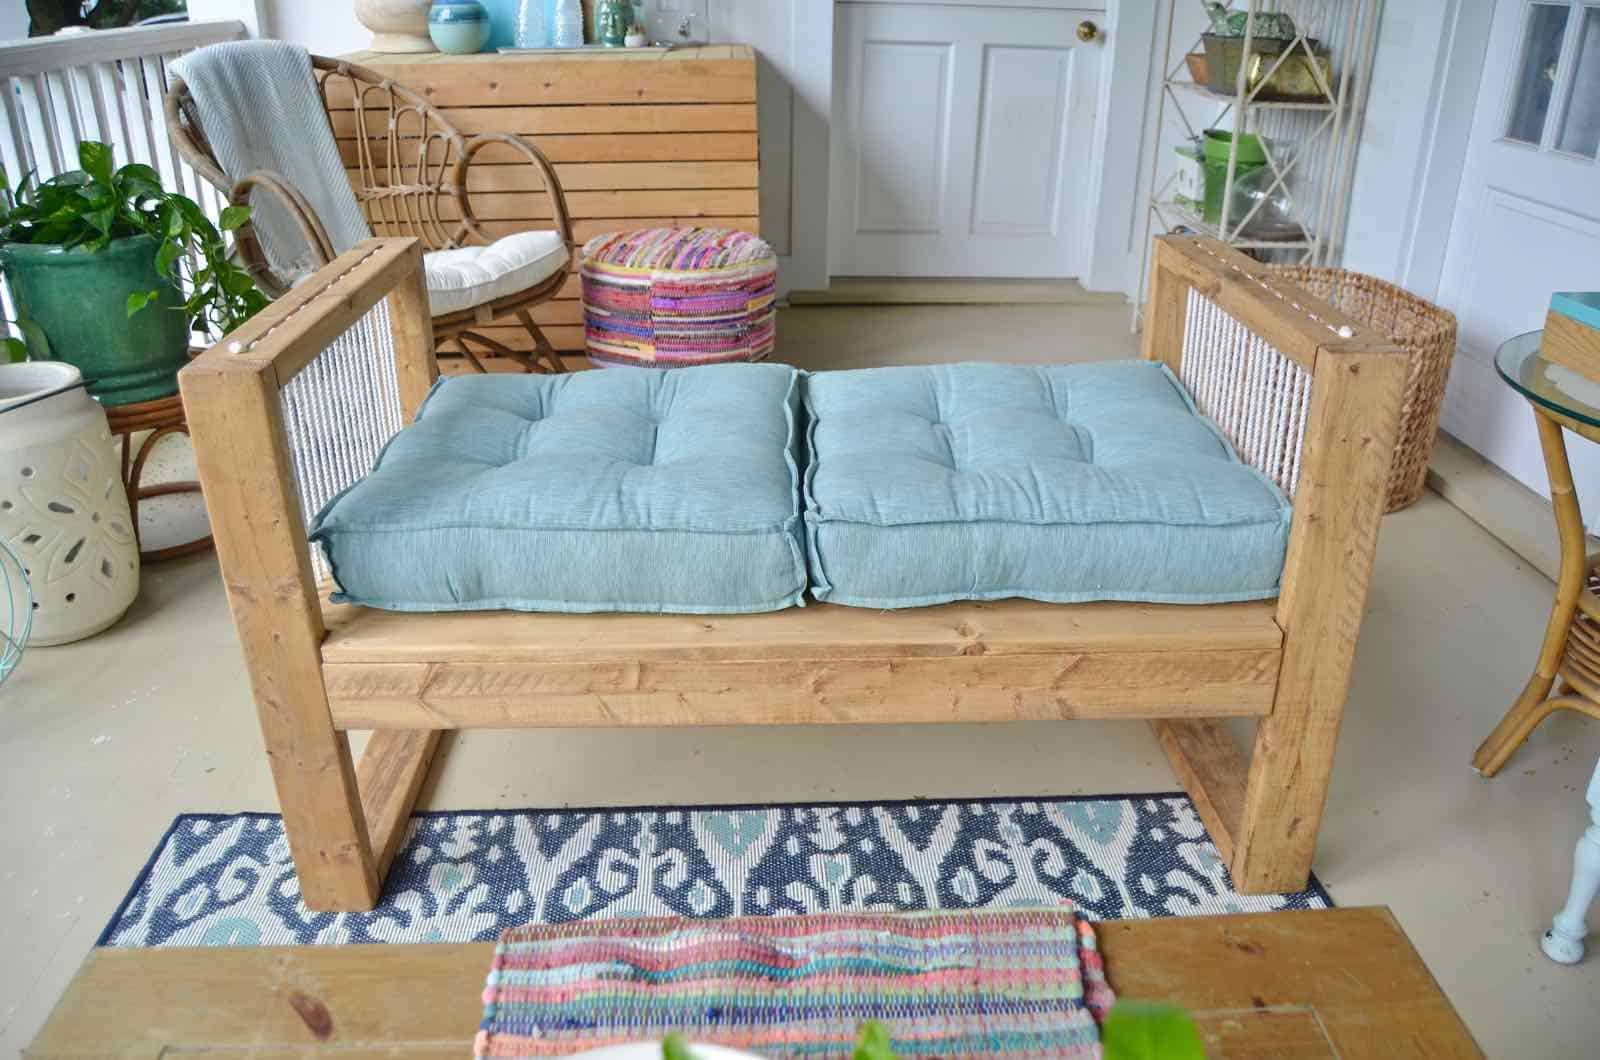 DIY bench made out of 2x4s with chic rope detail